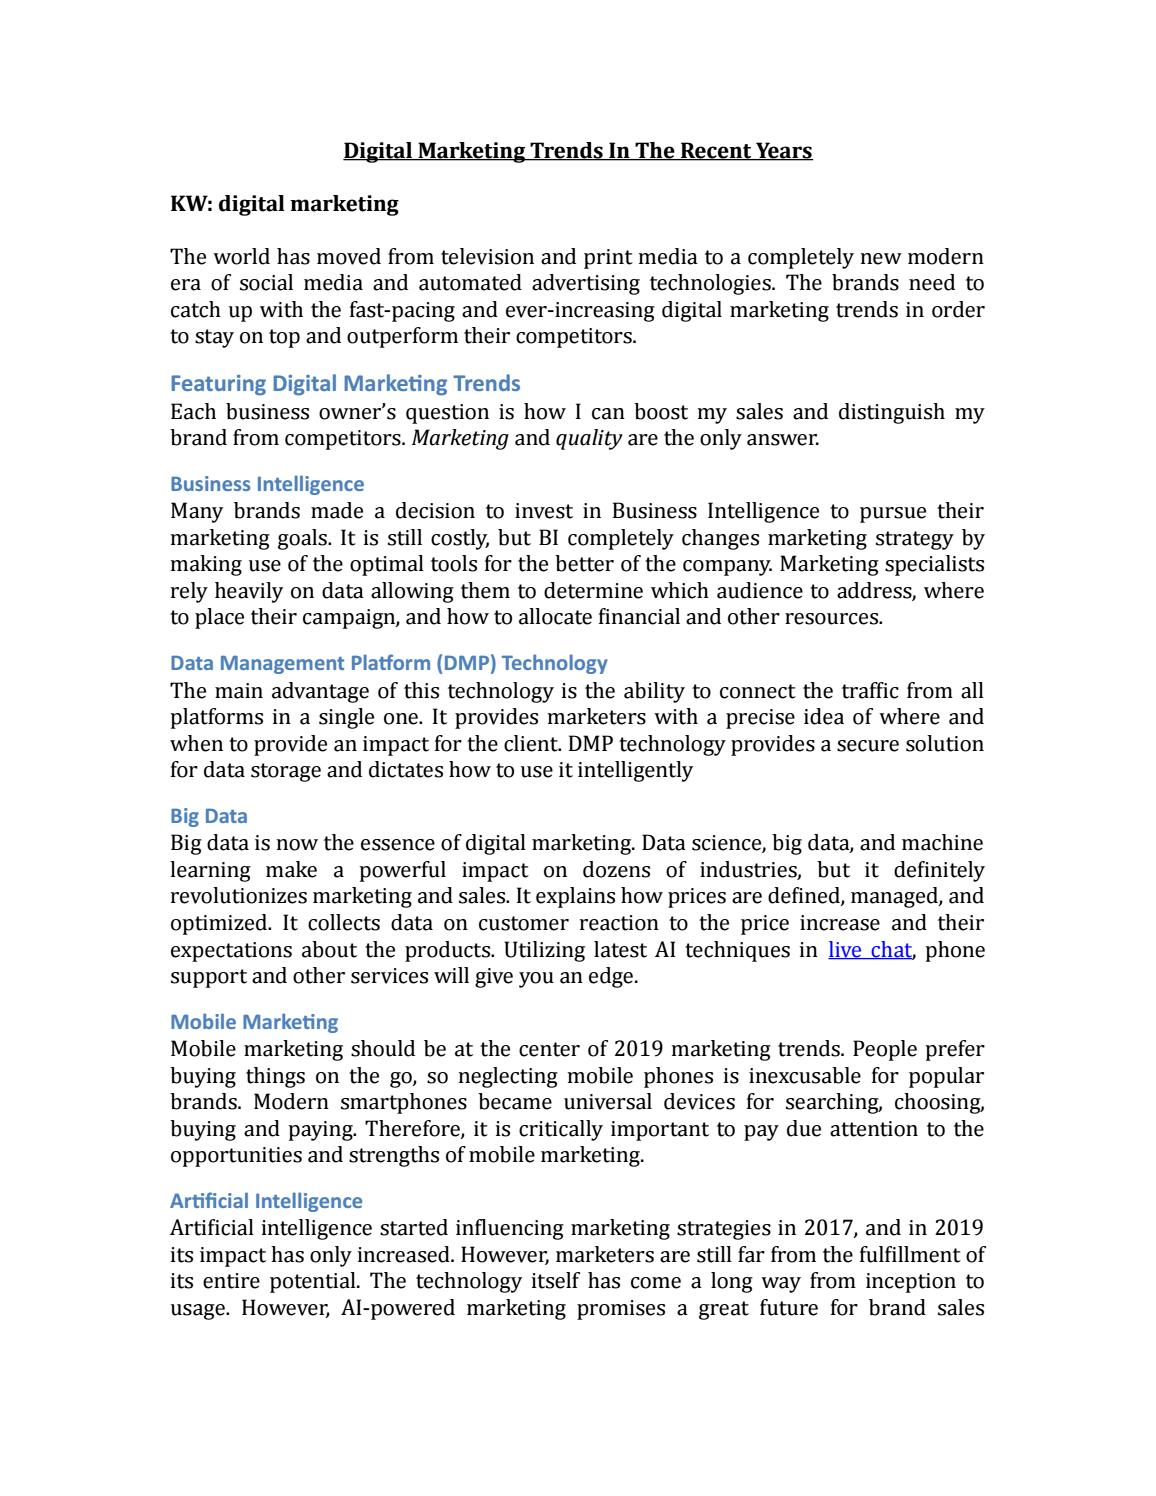 Digital Marketing Trends In The Recent Years by Talk Agent - issuu